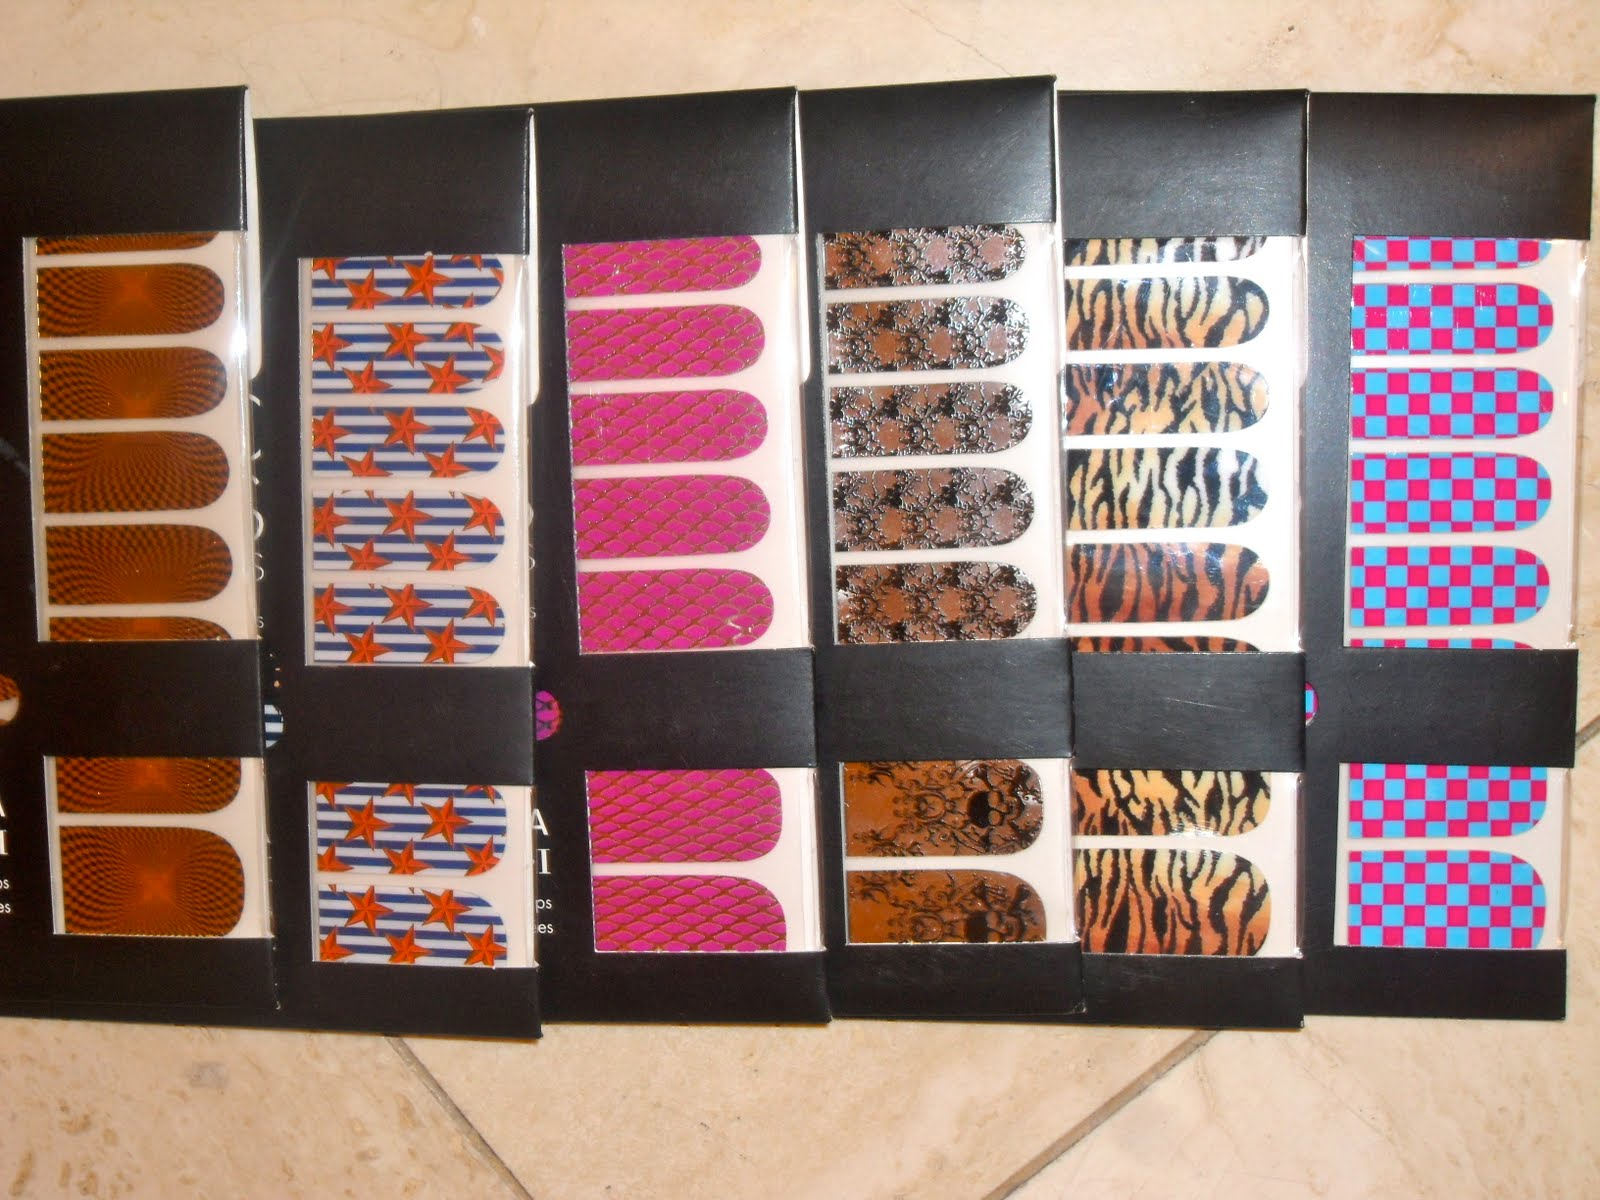 REVIEW | Sephora 'Chic Nails' nail art stickers